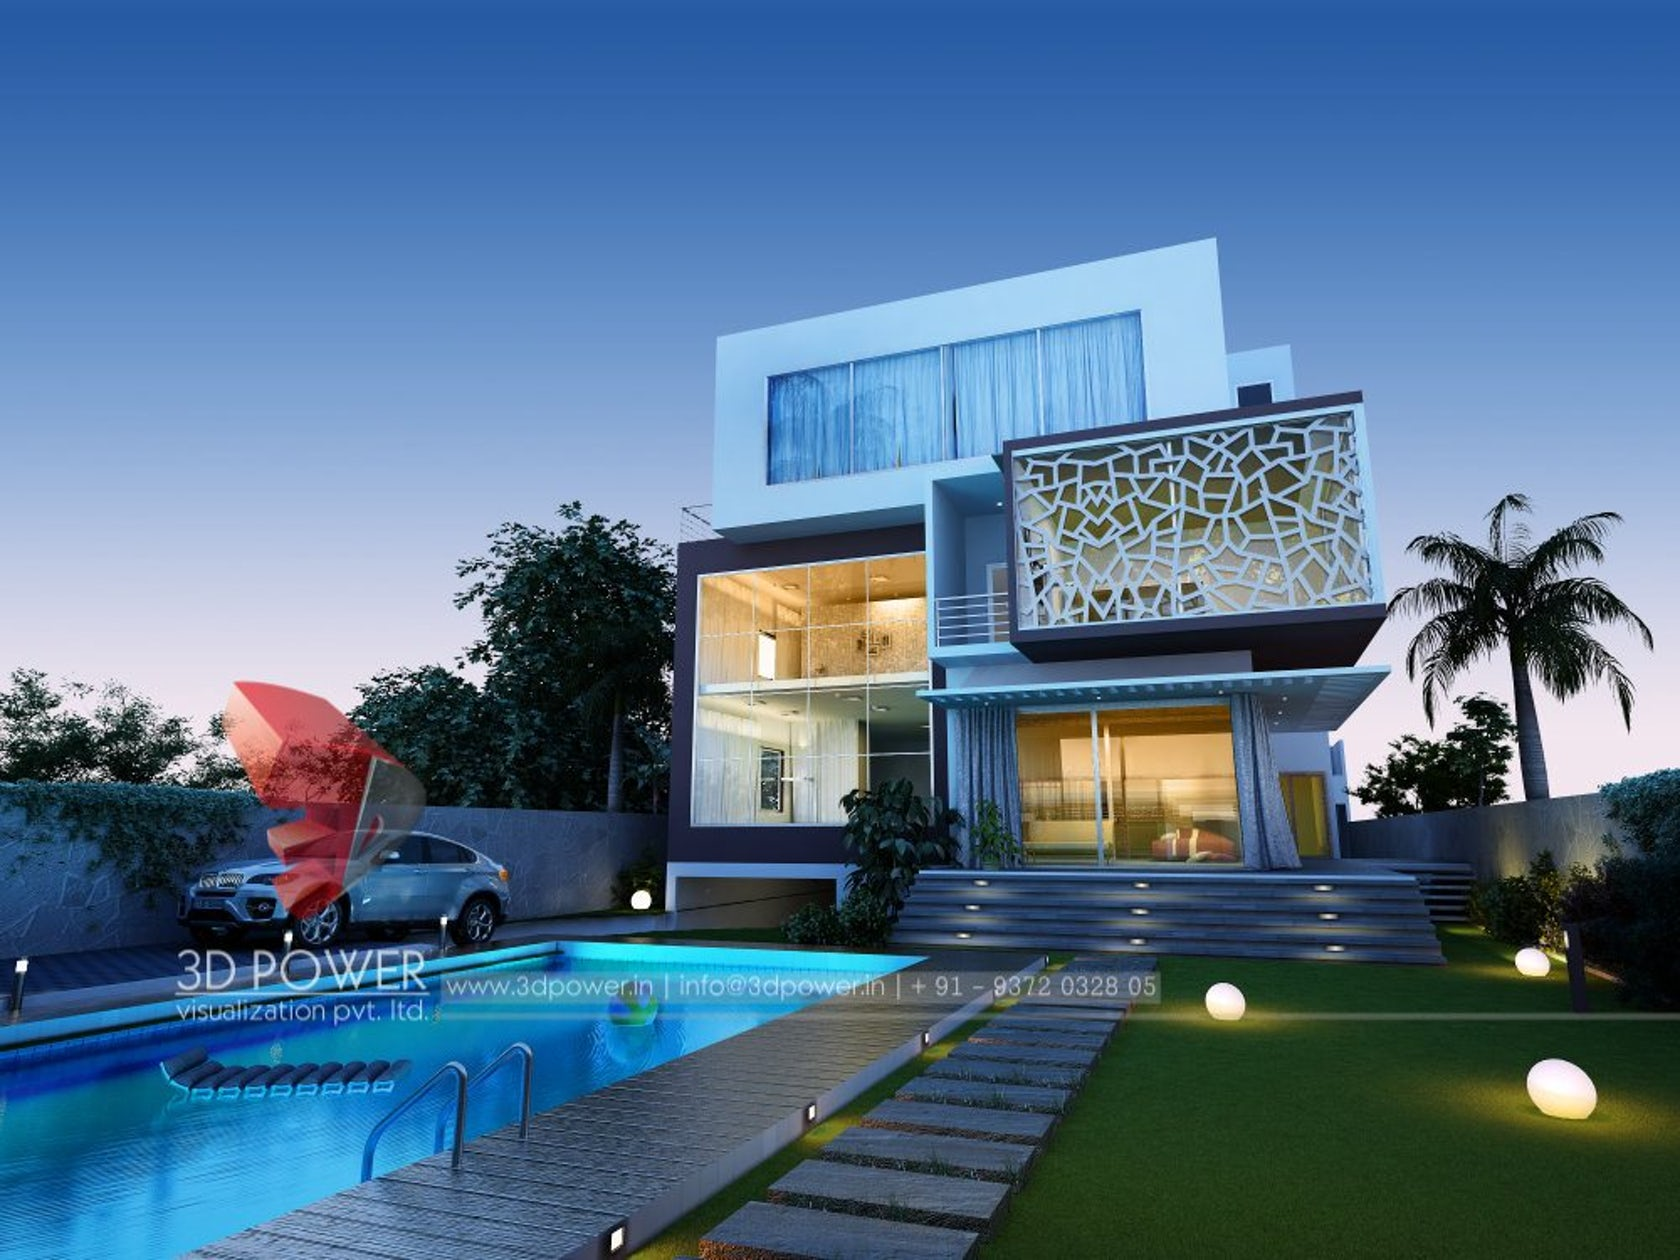 3d power visualization pvt ltd architizer Modern house company